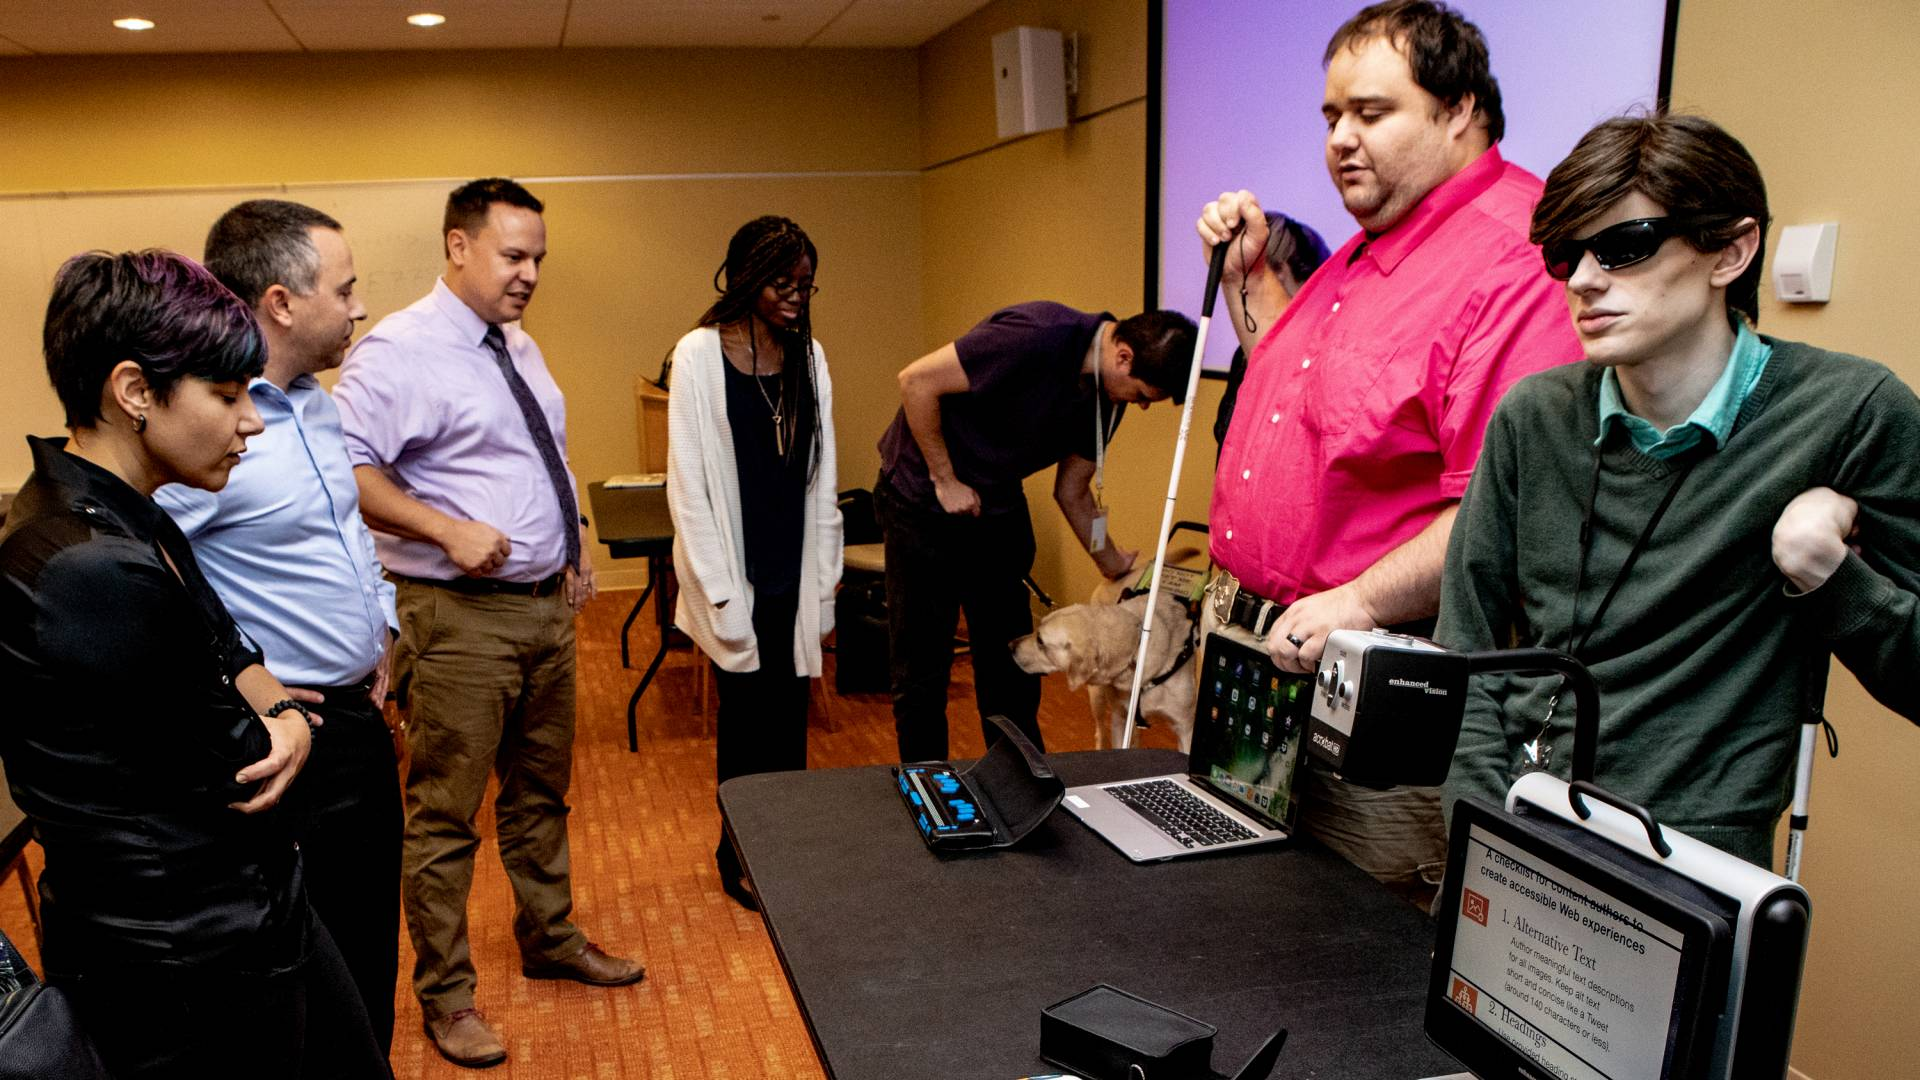 Representatives of the New Jersey Commission for the Blind and Visually Impaired demonstrate special screen readers for people with visual impairments